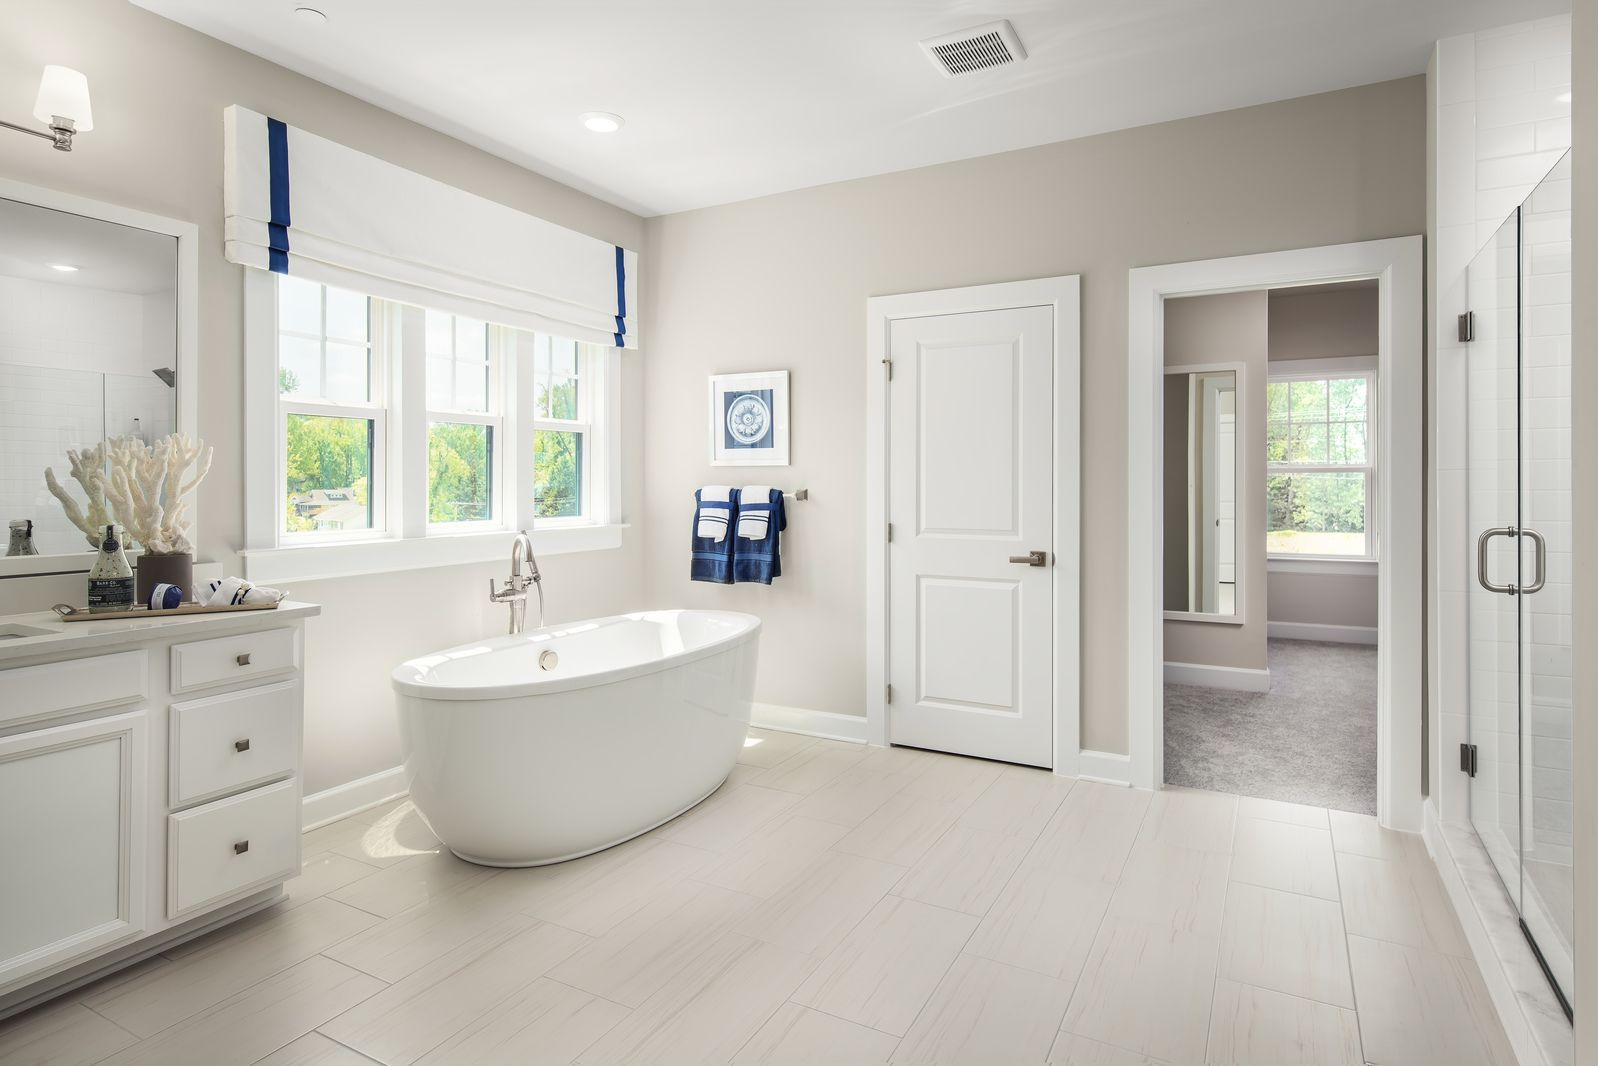 Bathroom featured in the Stratford Hall By NVHomes in Washington, MD